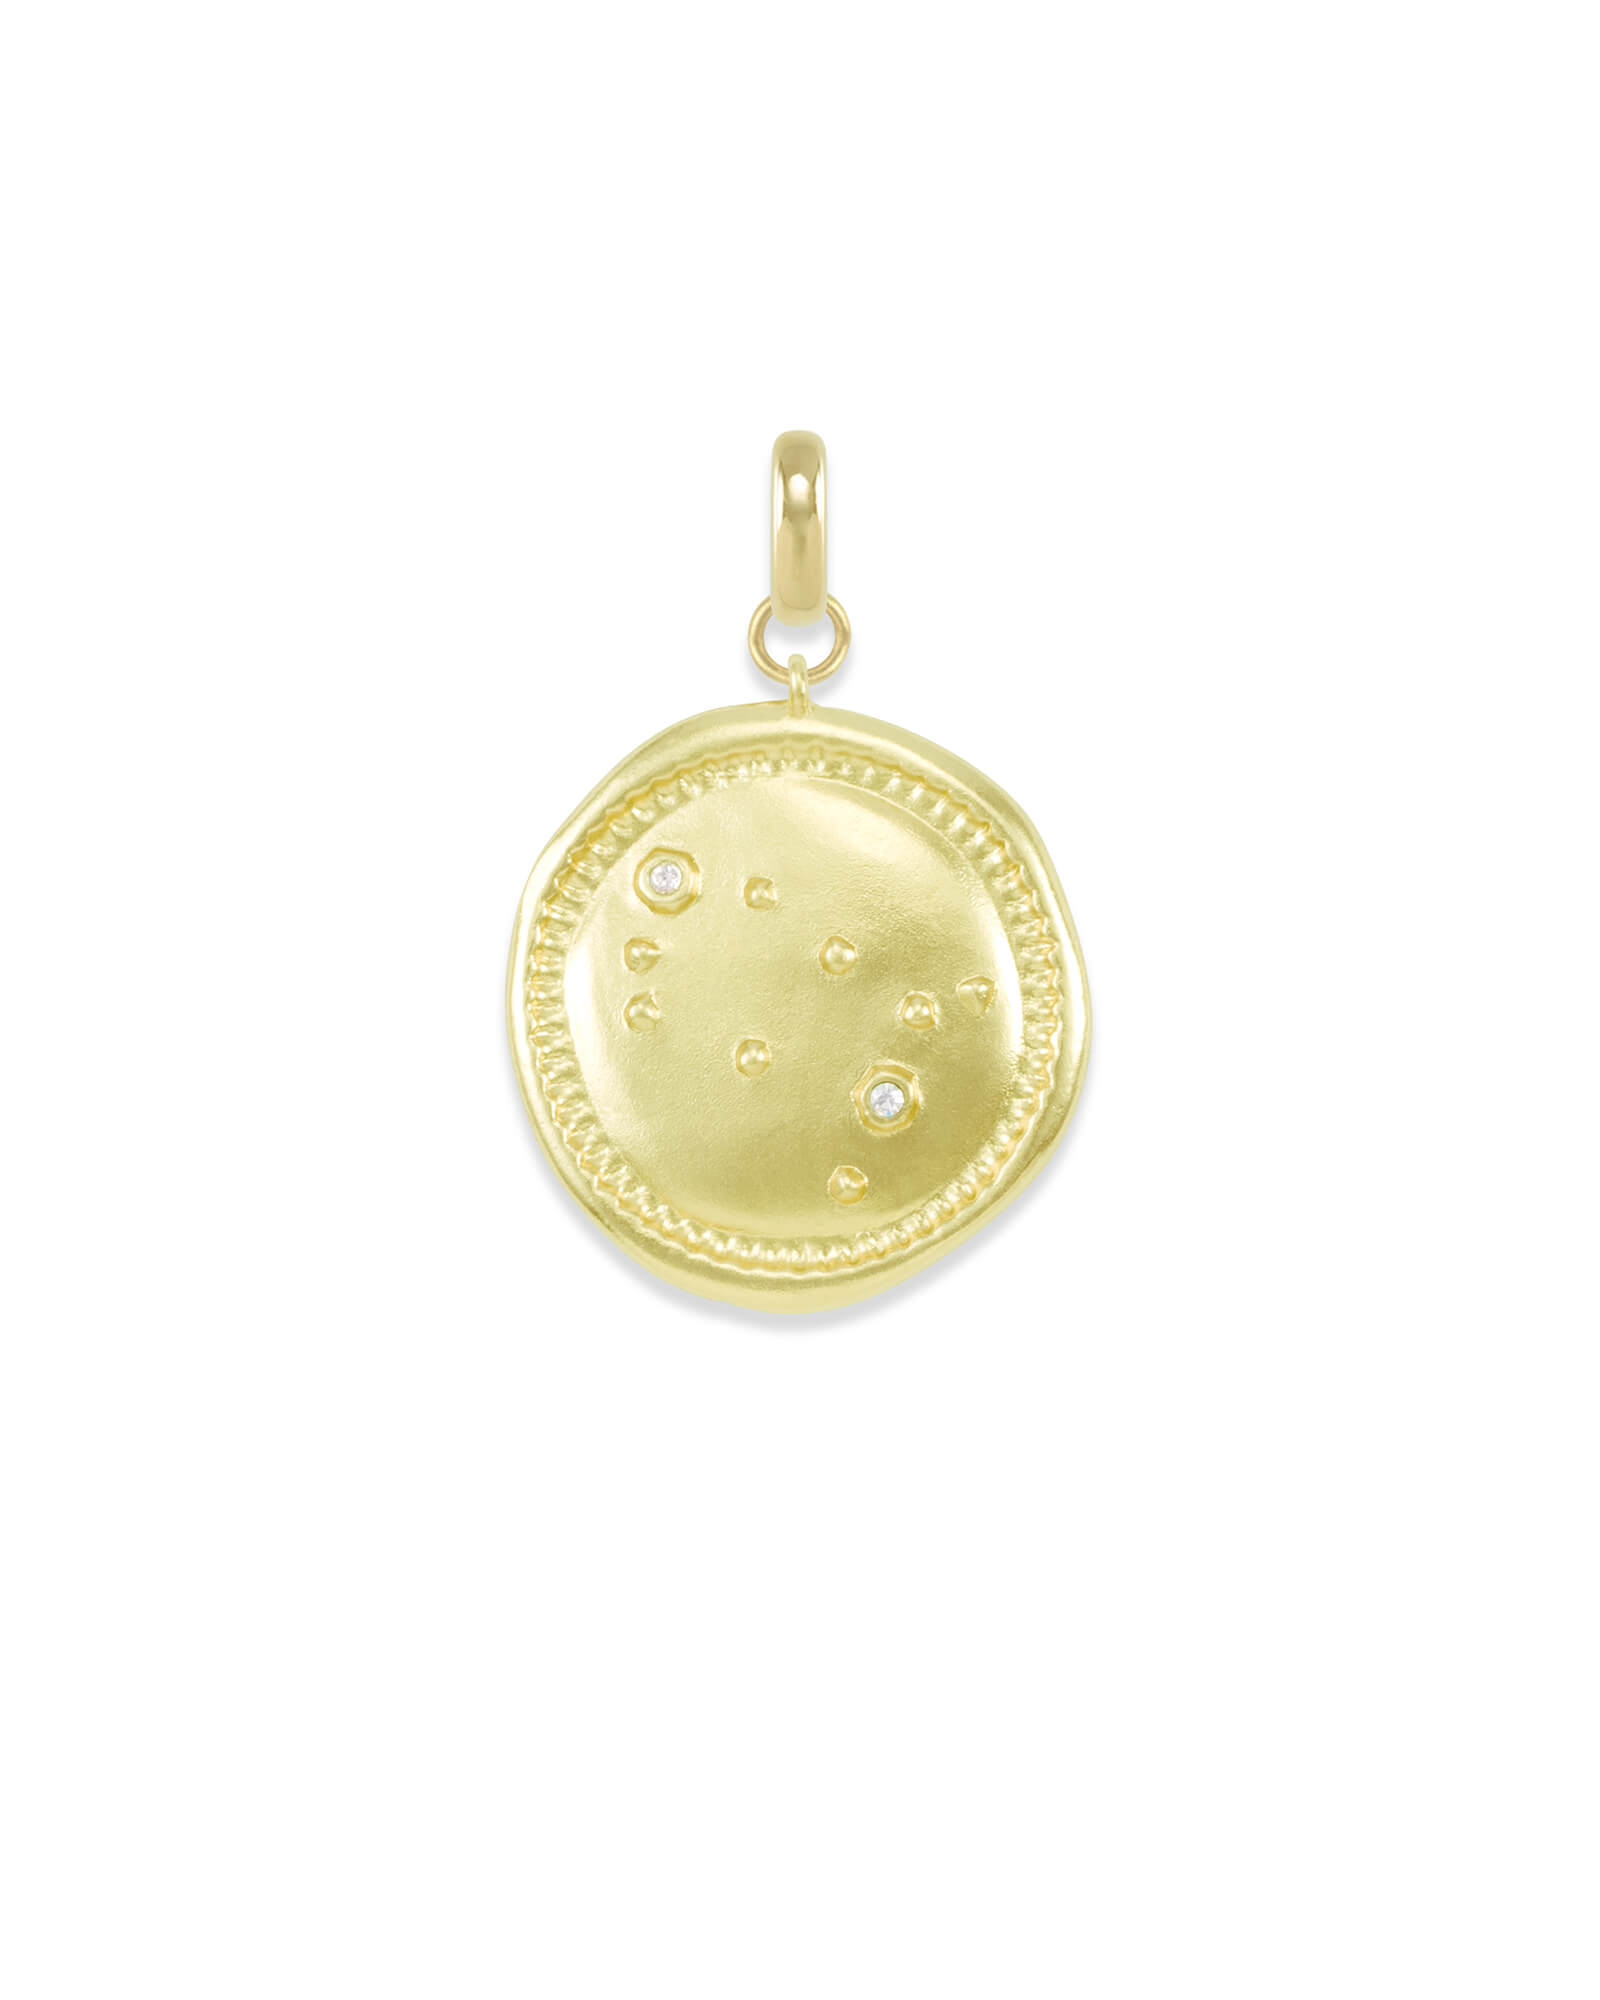 Gemini Coin Charm in Gold